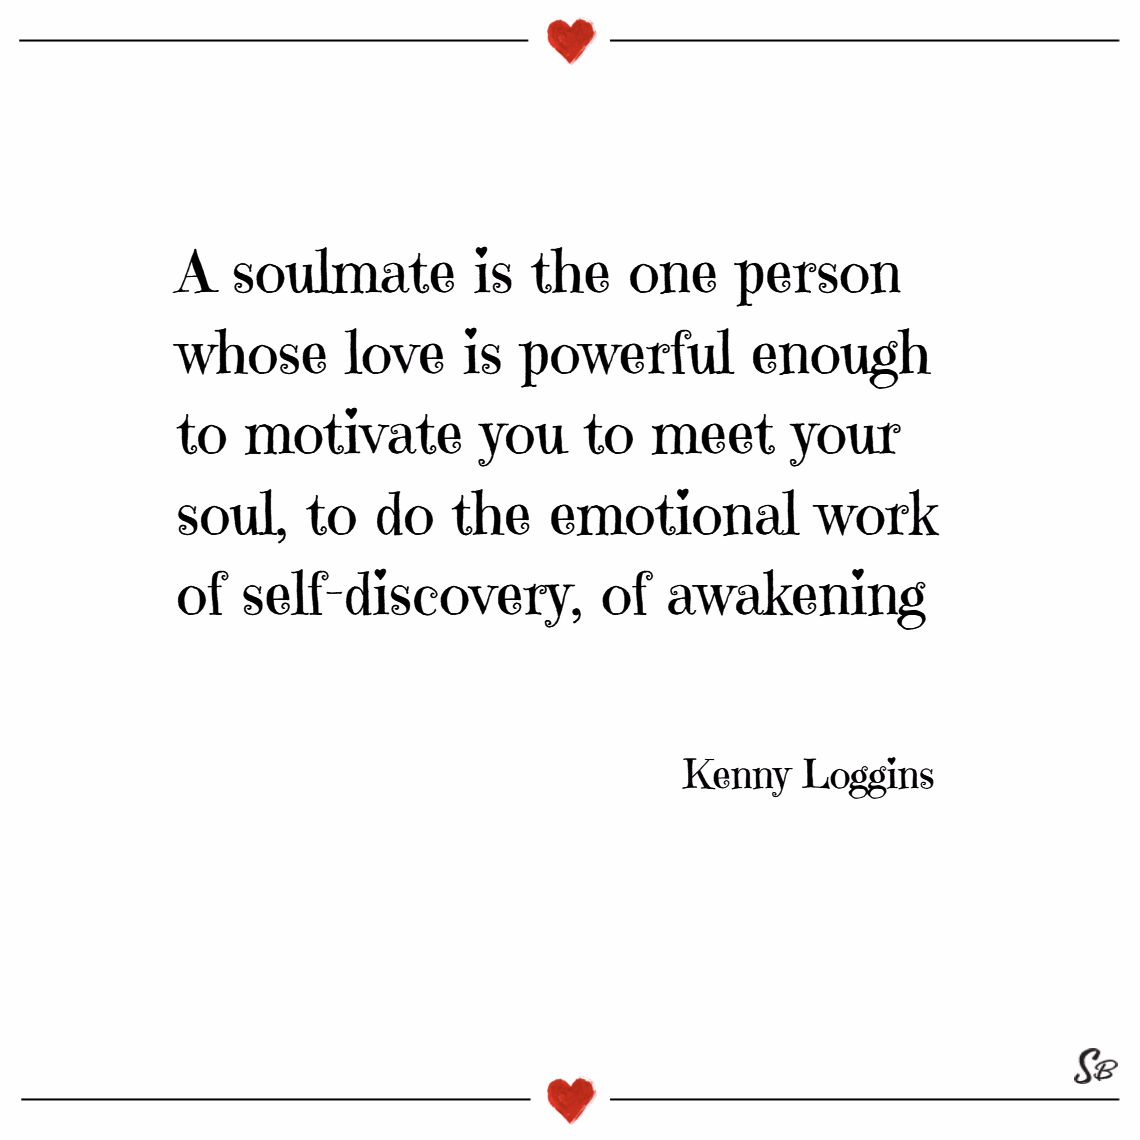 A soulmate is the one person whose love is powerful enough to motivate you to meet your soul, to do the emotional work of self discovery, of awakening. – kenny loggins